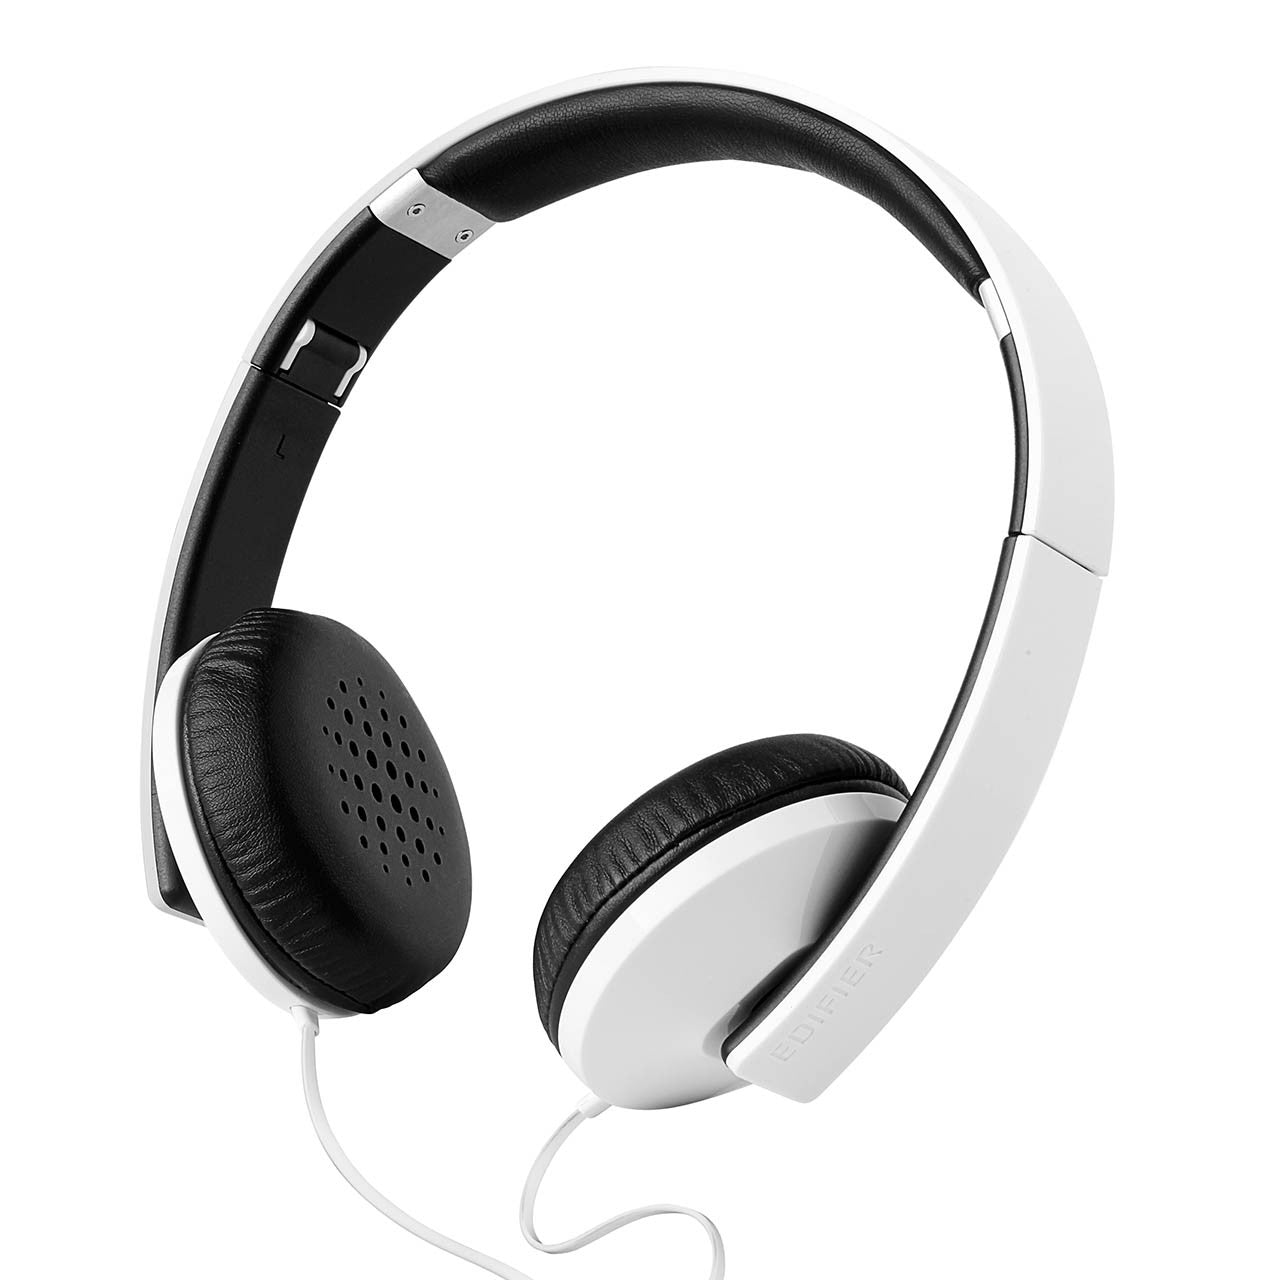 Edifier H750 Hi-Fi On-ear Headphones - Compact Foldable Stereo Headphone